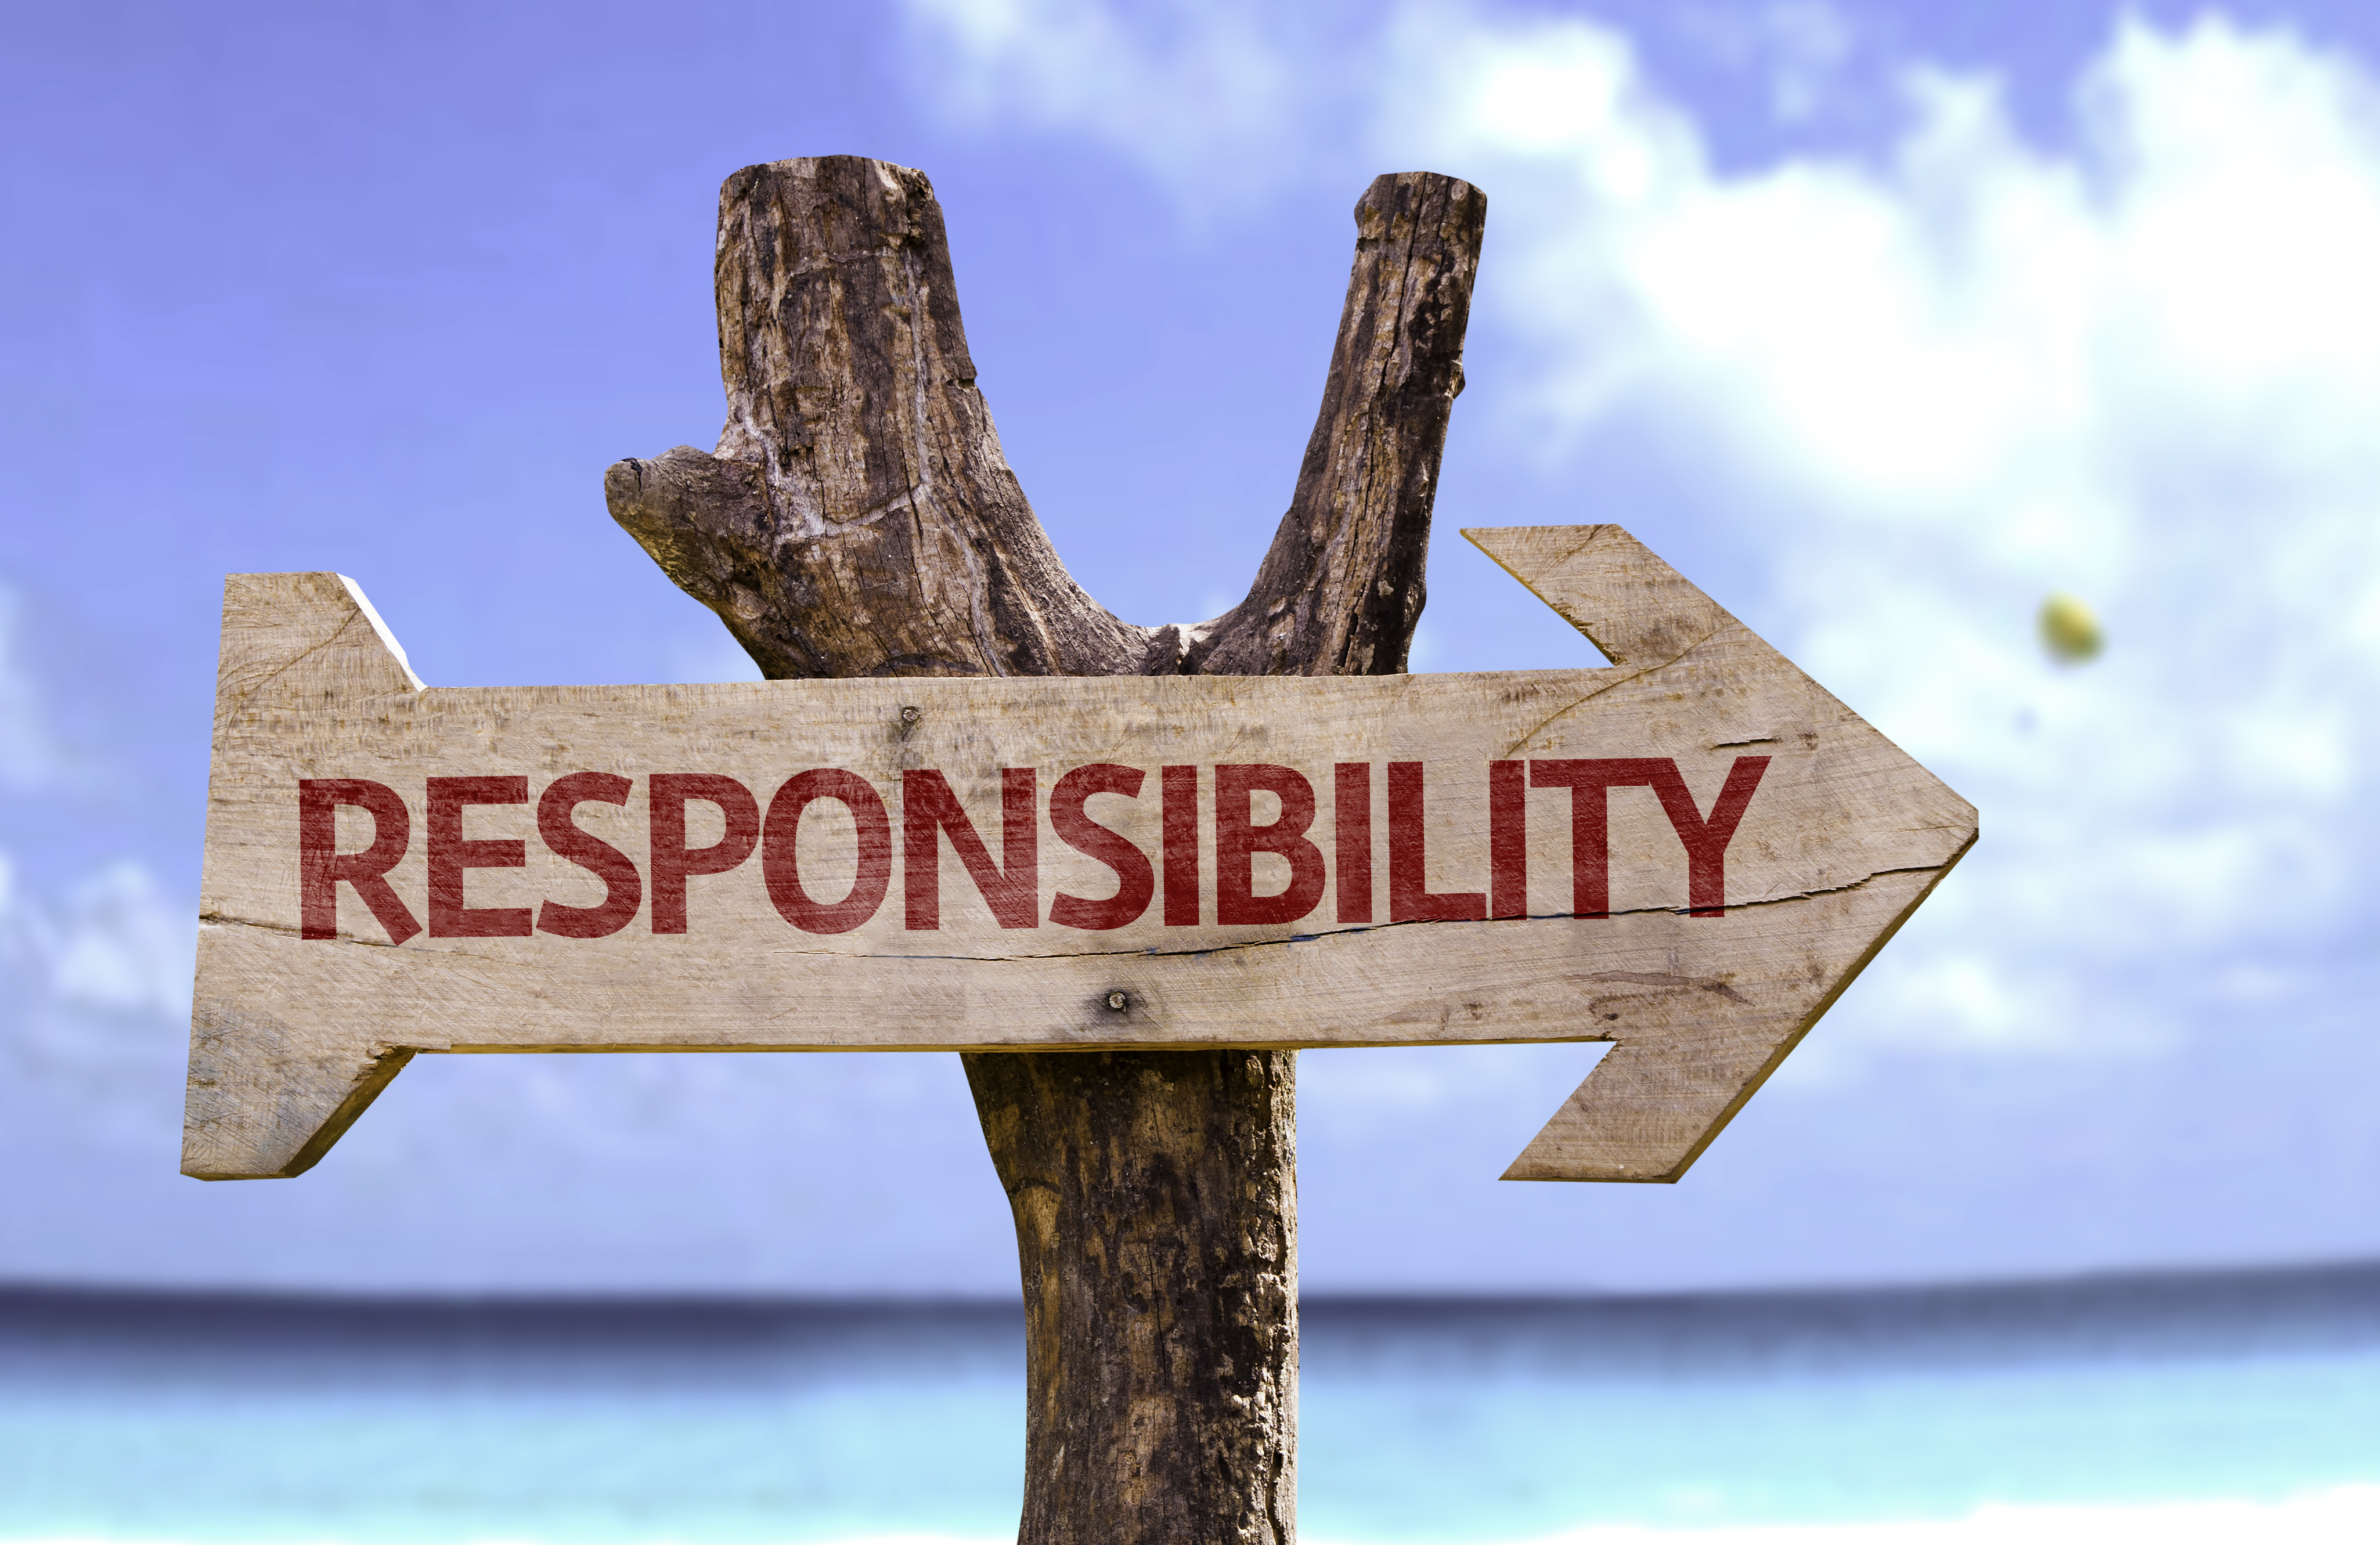 Responsible picture panda free. Responsibility clipart